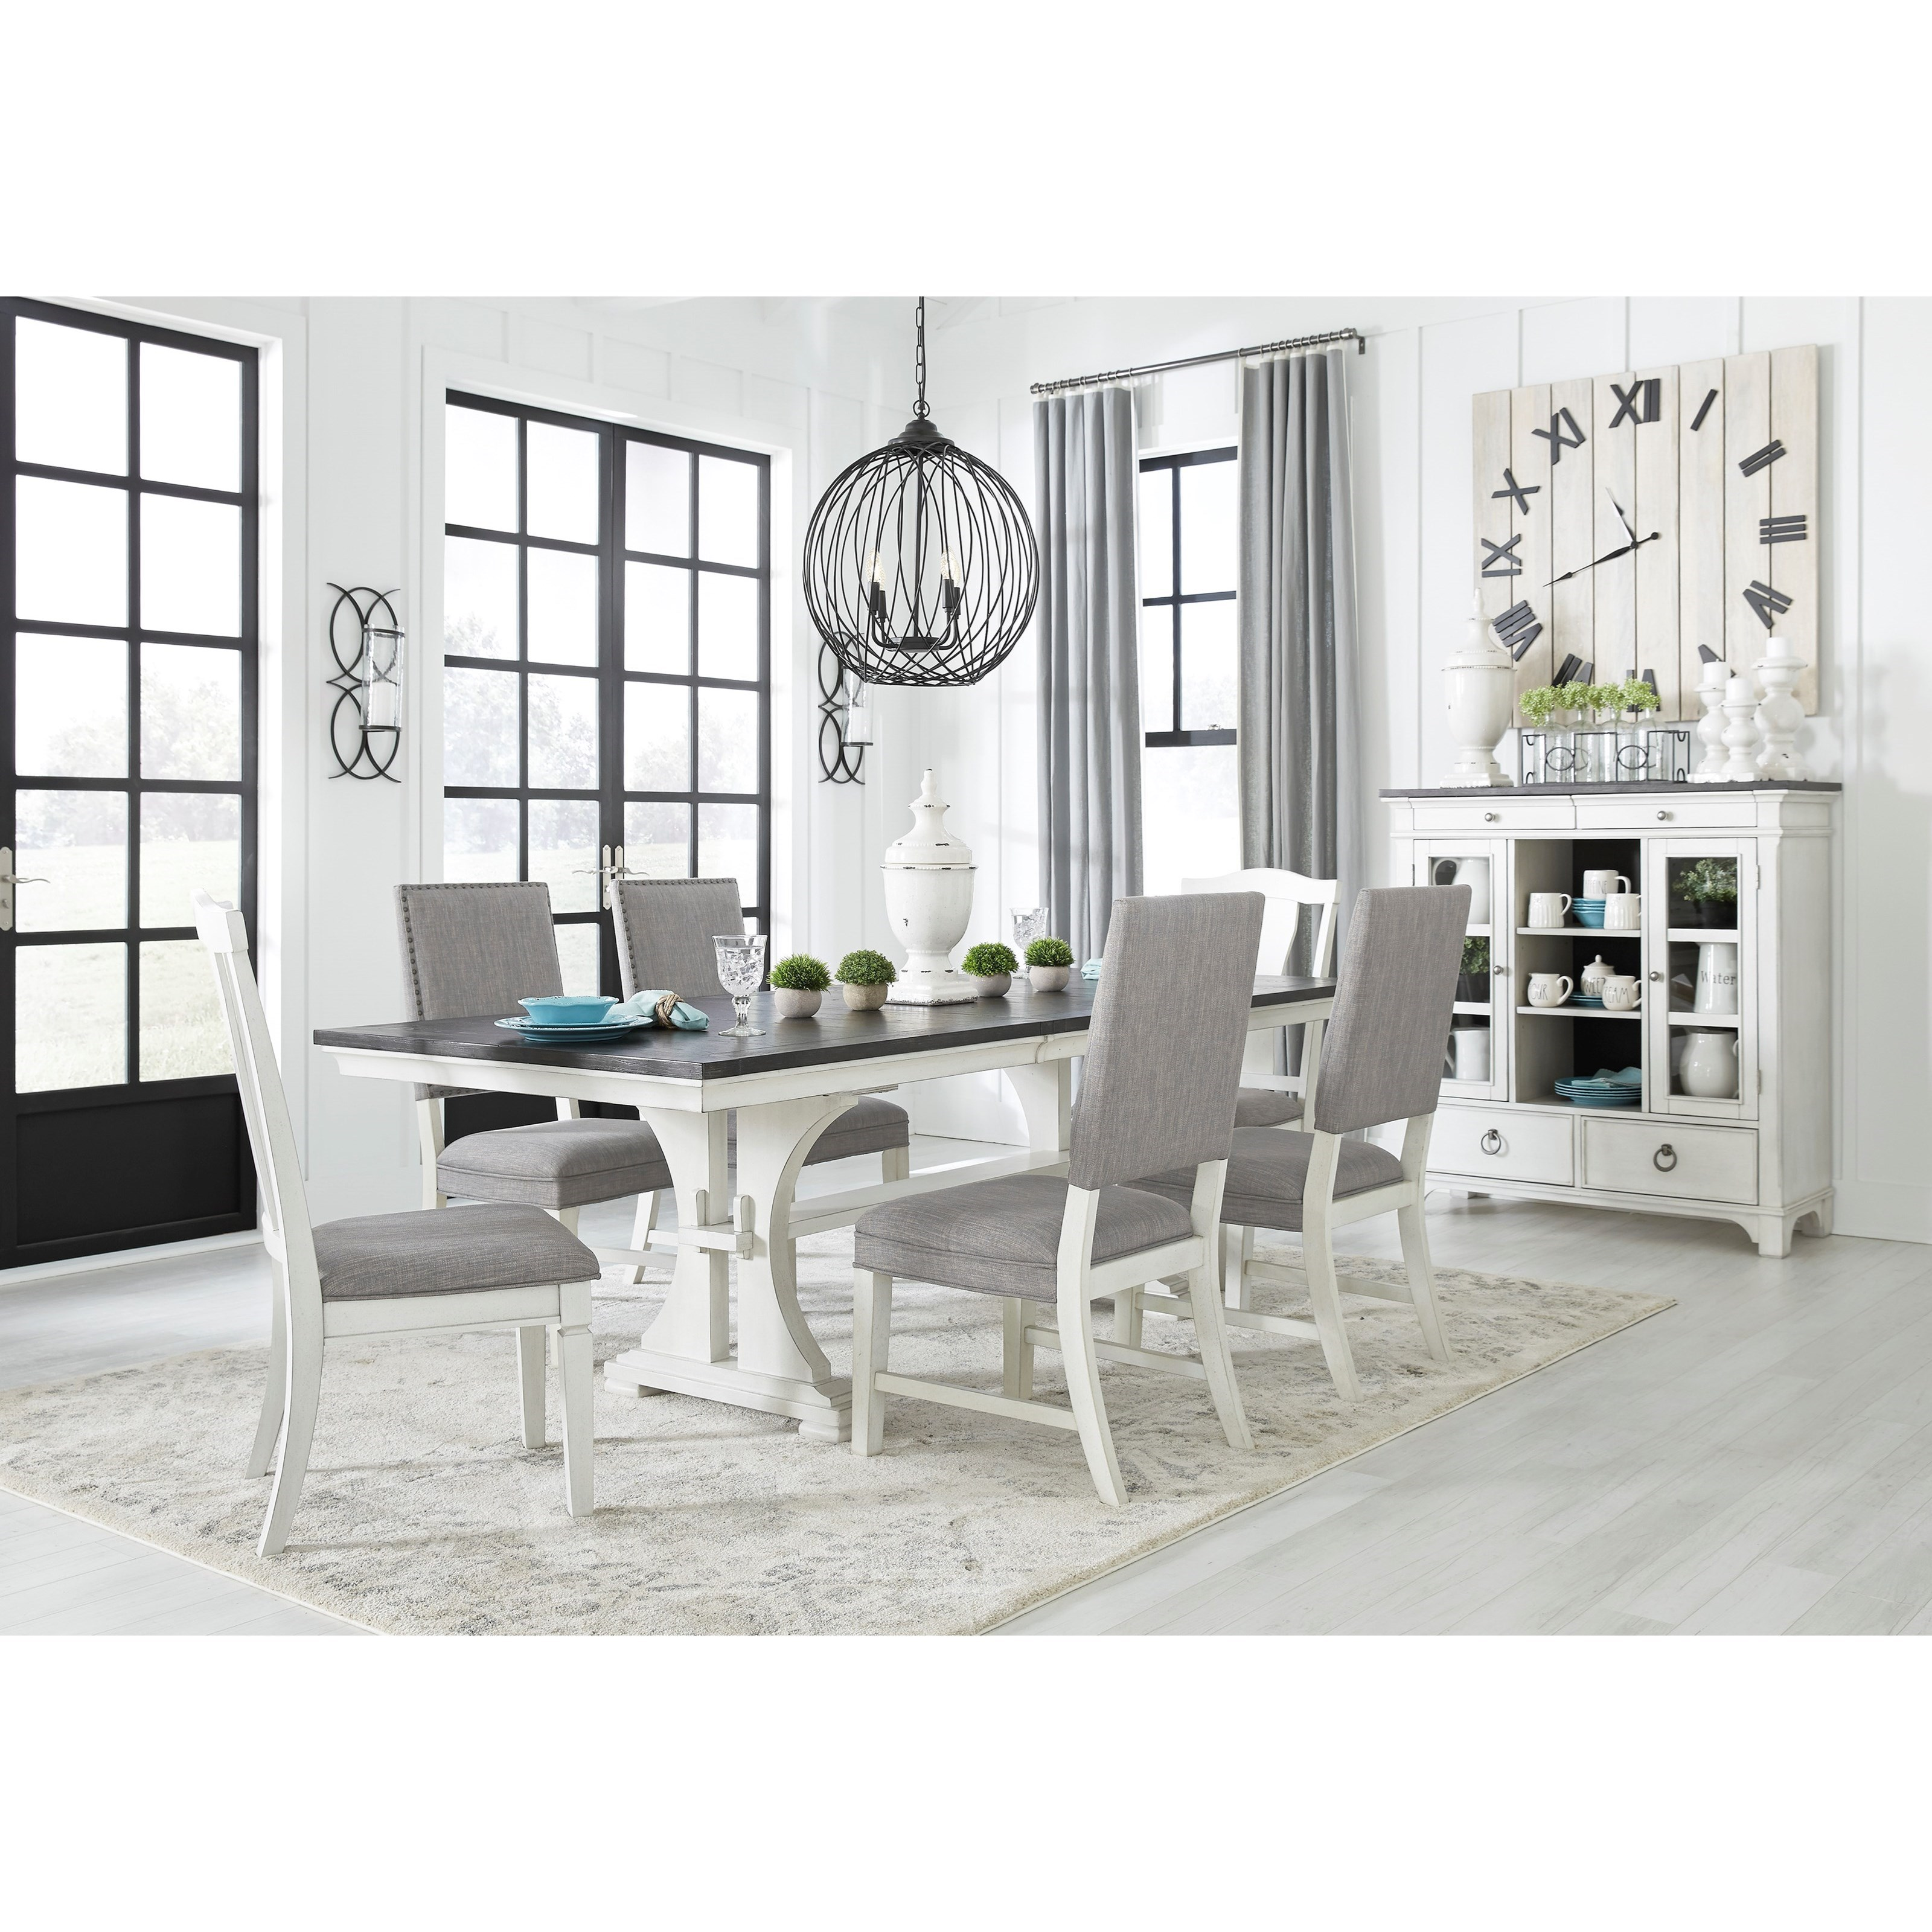 Nashbryn Dining Room Group by Benchcraft at Value City Furniture